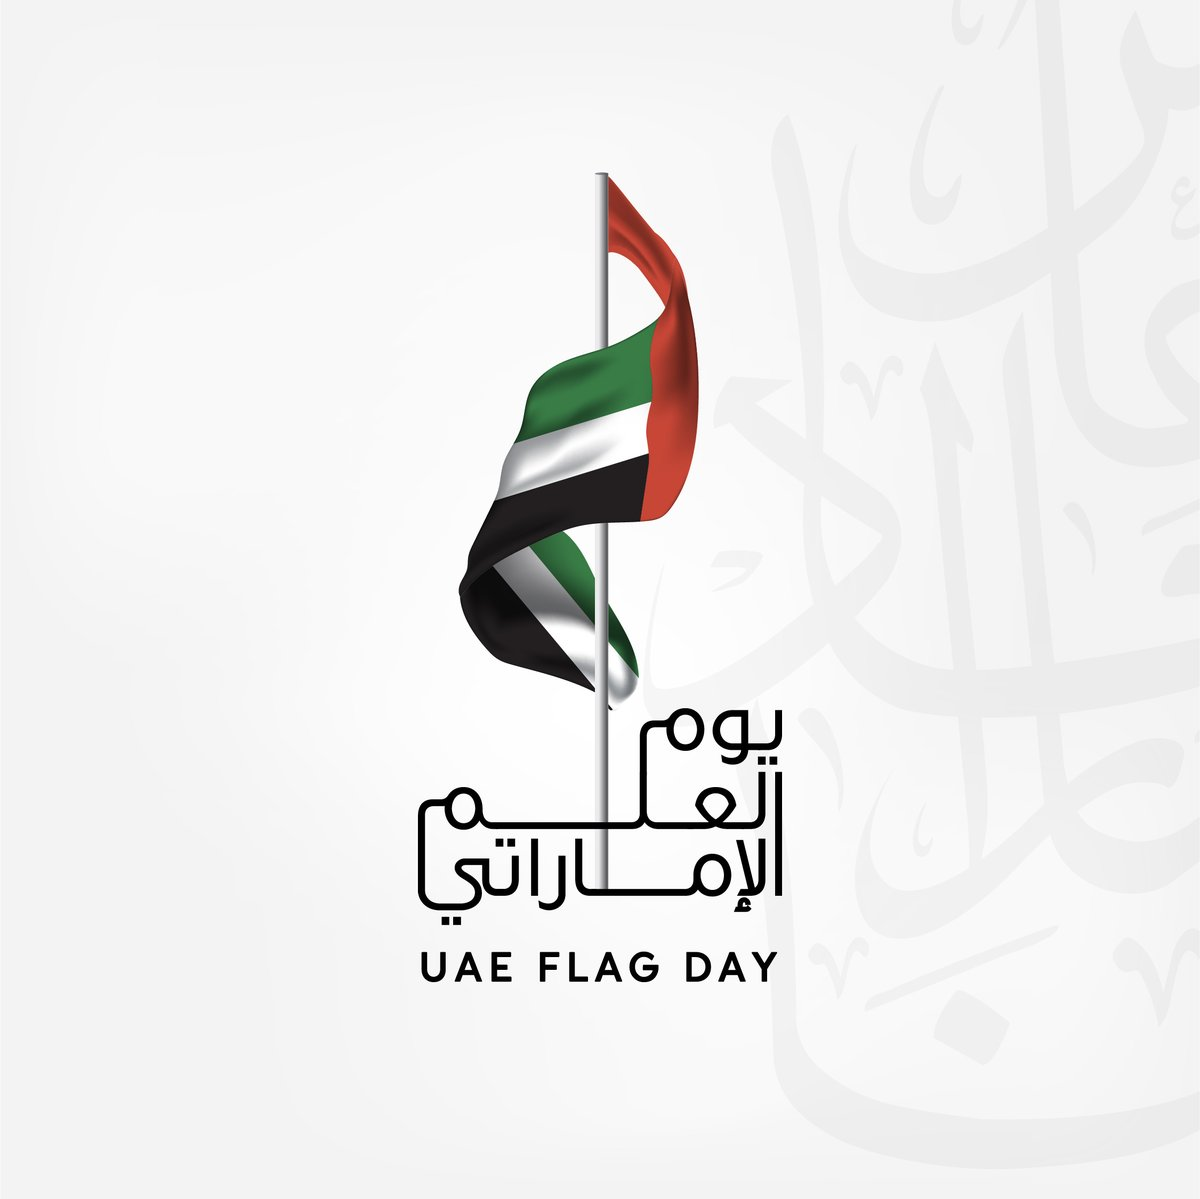 Proud to raise the UAE flag high in honour and appreciation of our beloved nation #UAEFlagDay #RaiseItHigh #RaiseItProud https://t.co/gN6y57cCkF